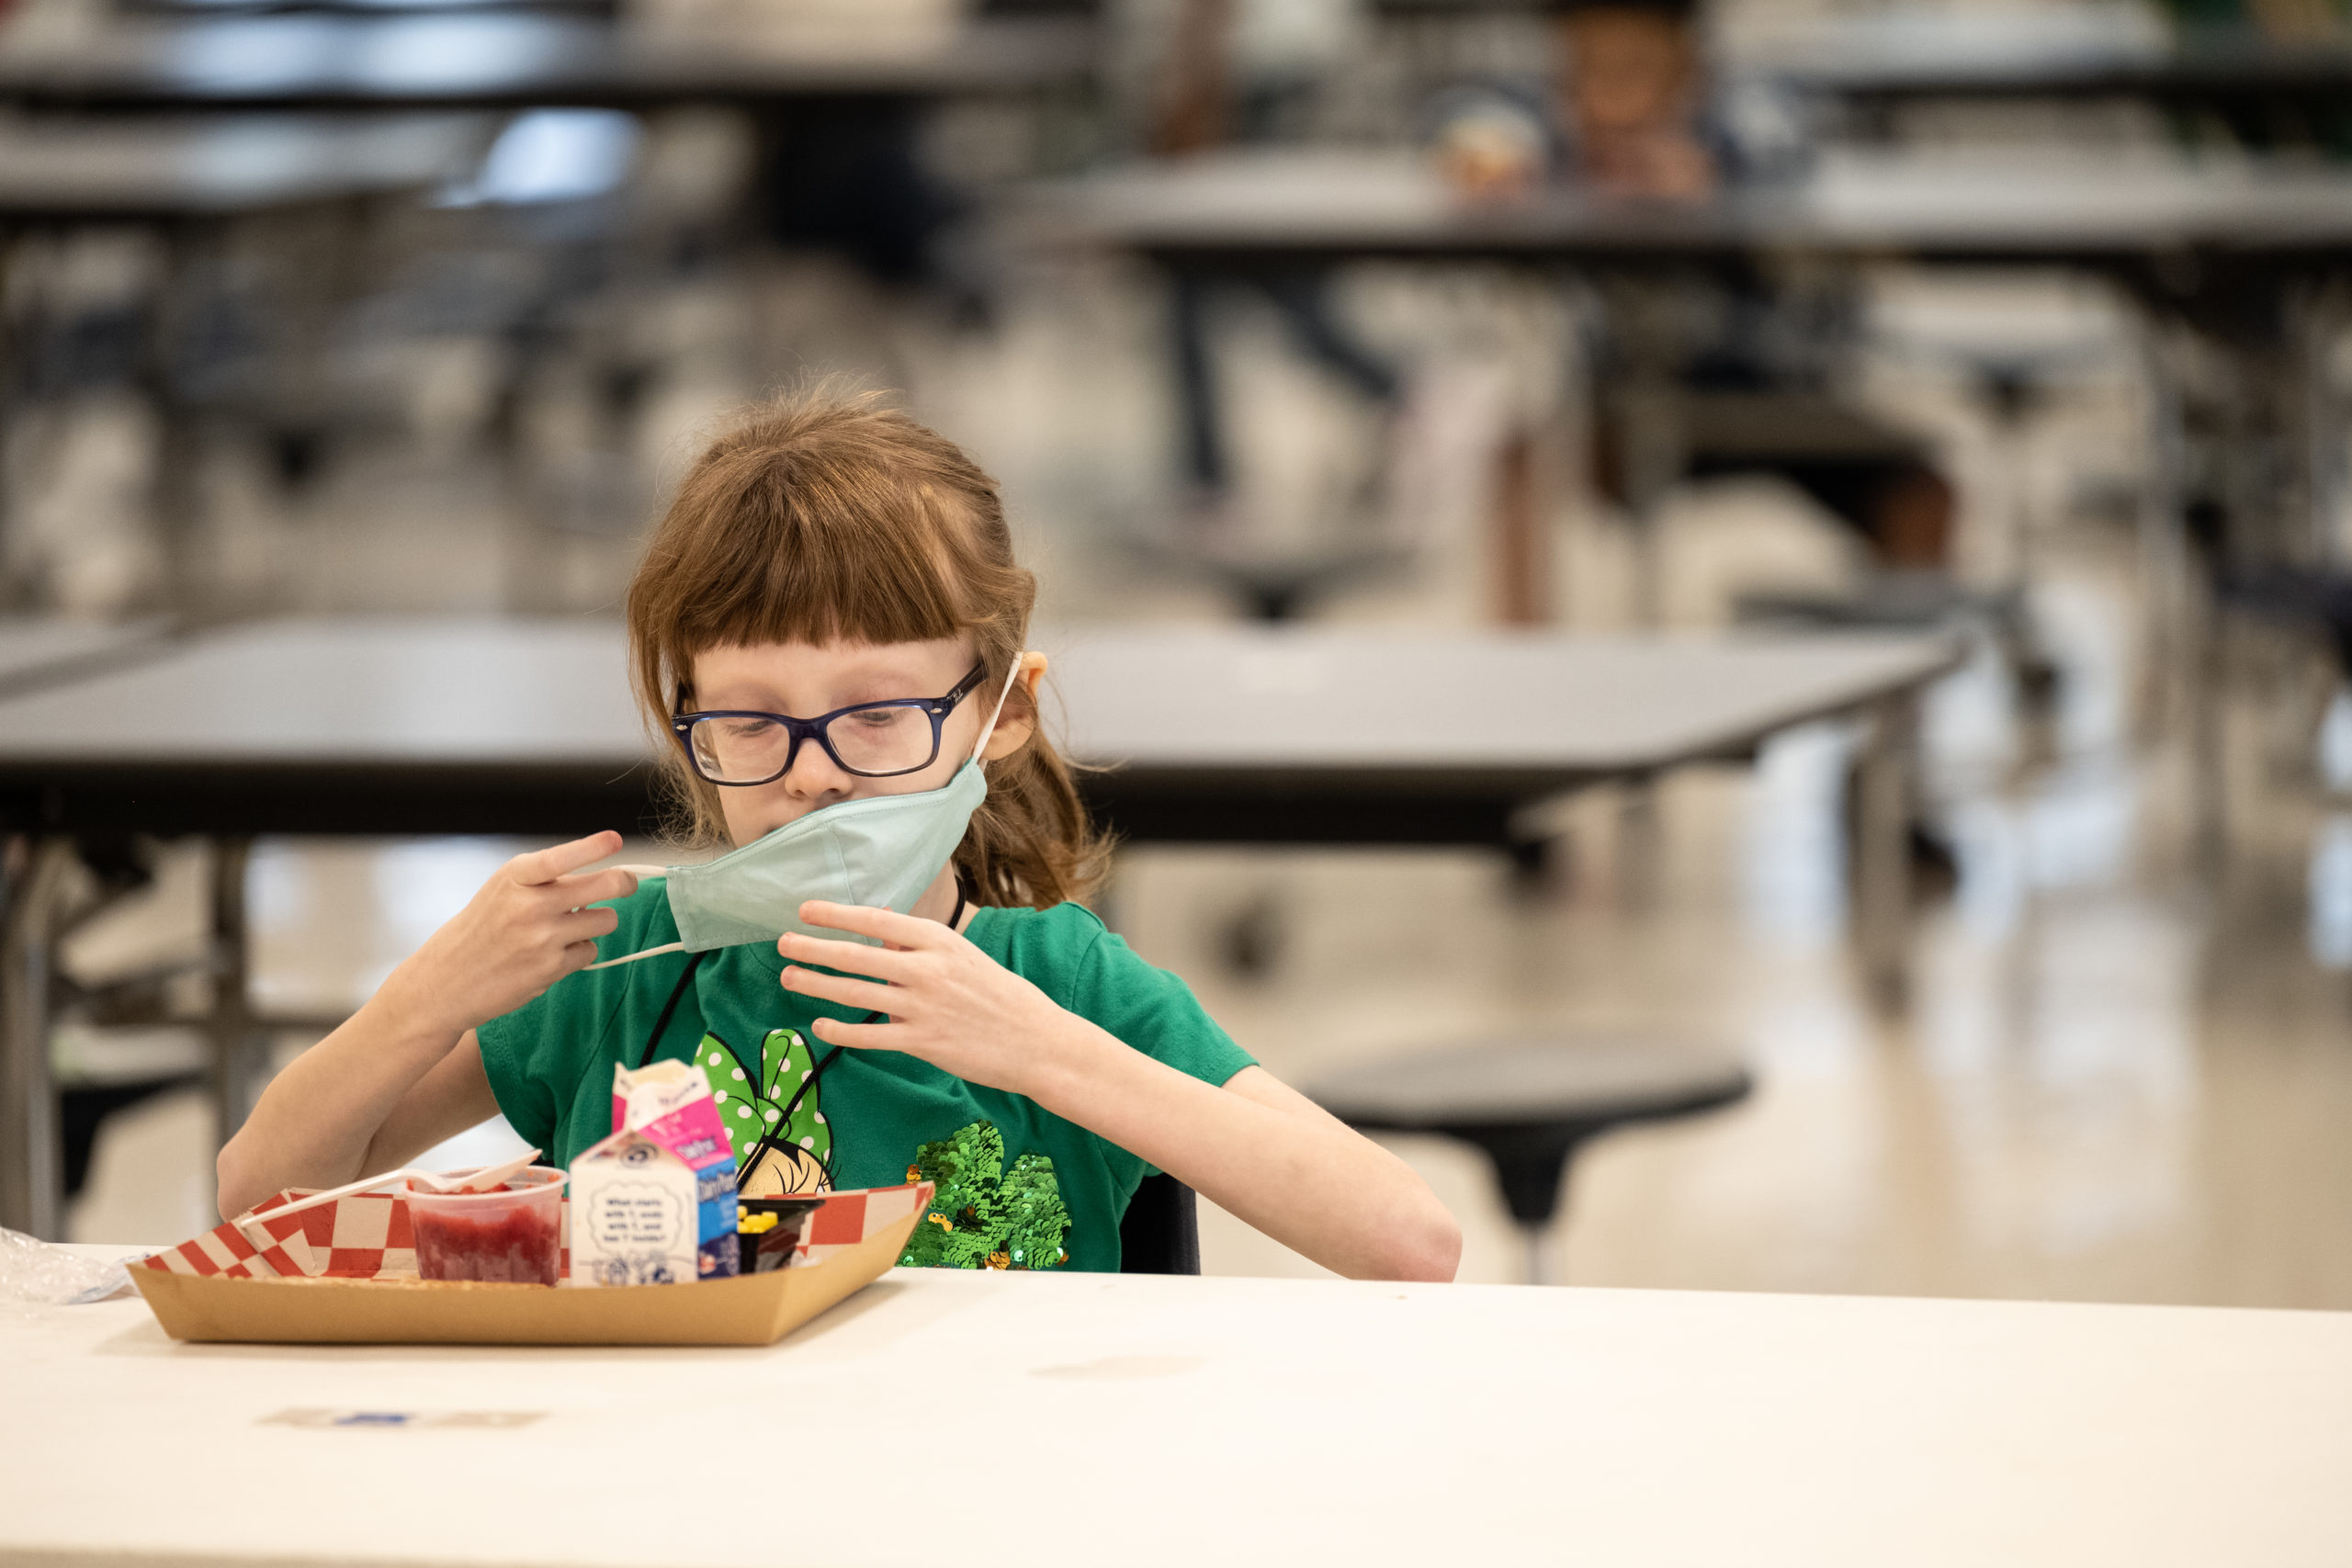 LOUISVILLE, KY - MARCH 17: A child puts her mask back on after finishing lunch at a socially distanced table in the cafeteria of Medora Elementary School on March 17, 2021 in Louisville, Kentucky. Today marks the reopening of Jefferson County Public Schools for in-person learning with new COVID-19 procedures in place. (Photo by Jon Cherry/Getty Images)